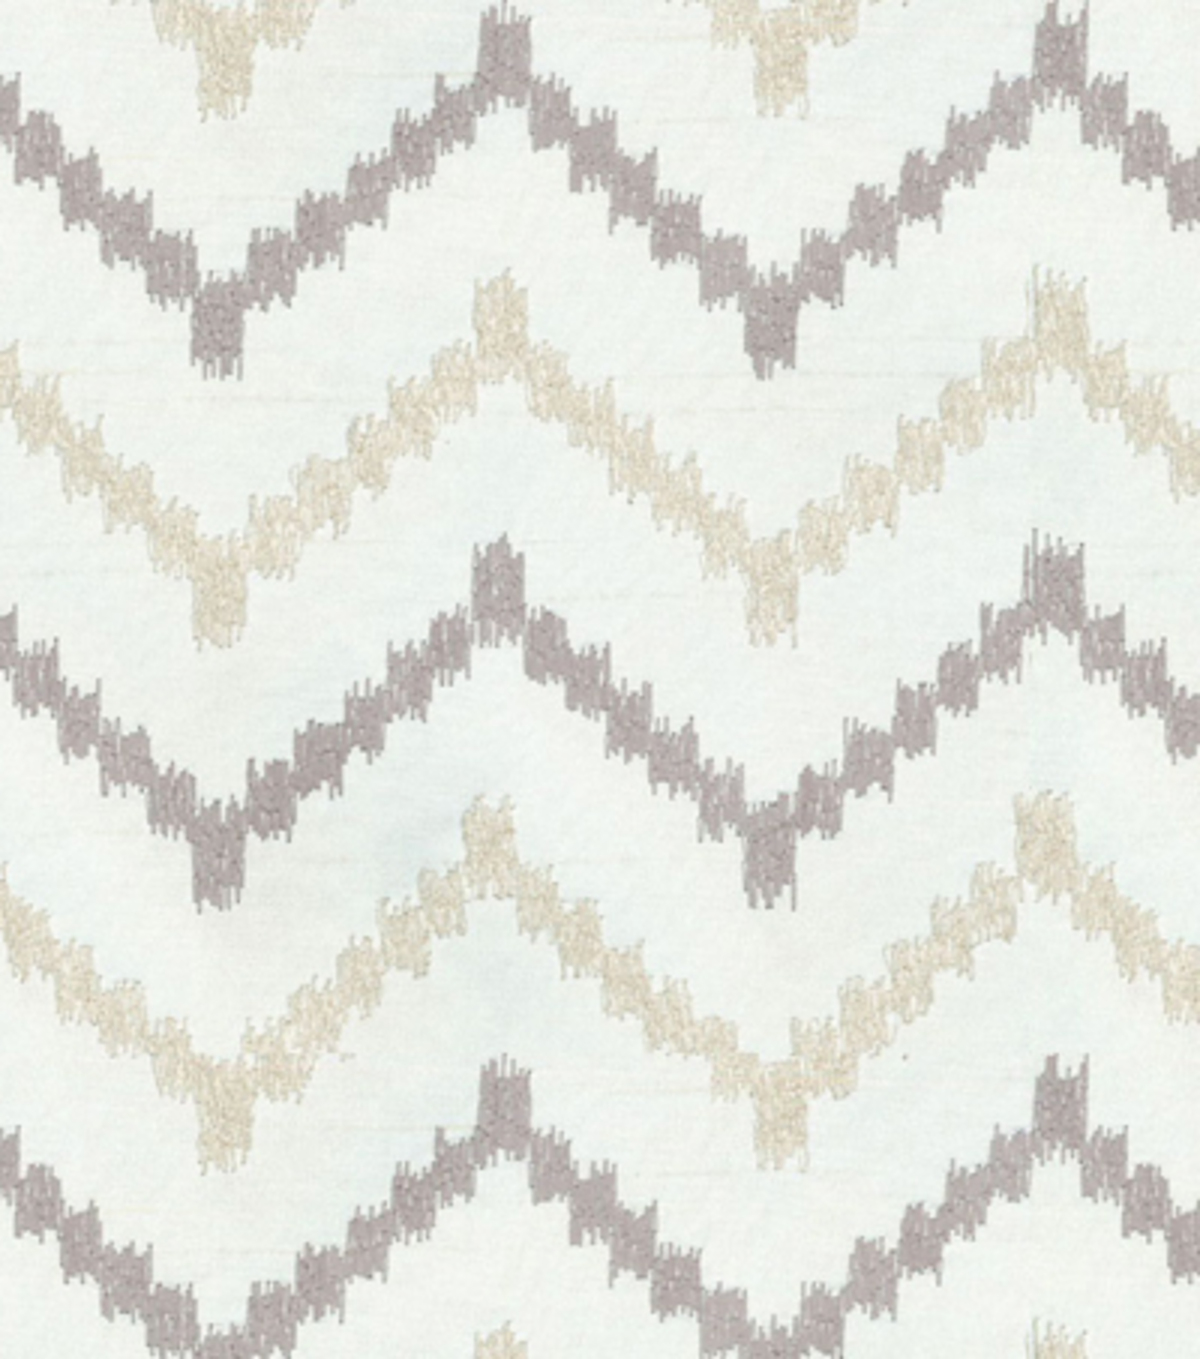 Home Decor 8\u0022x8\u0022 Fabric Swatch-HGTV HOME Life Line Silver